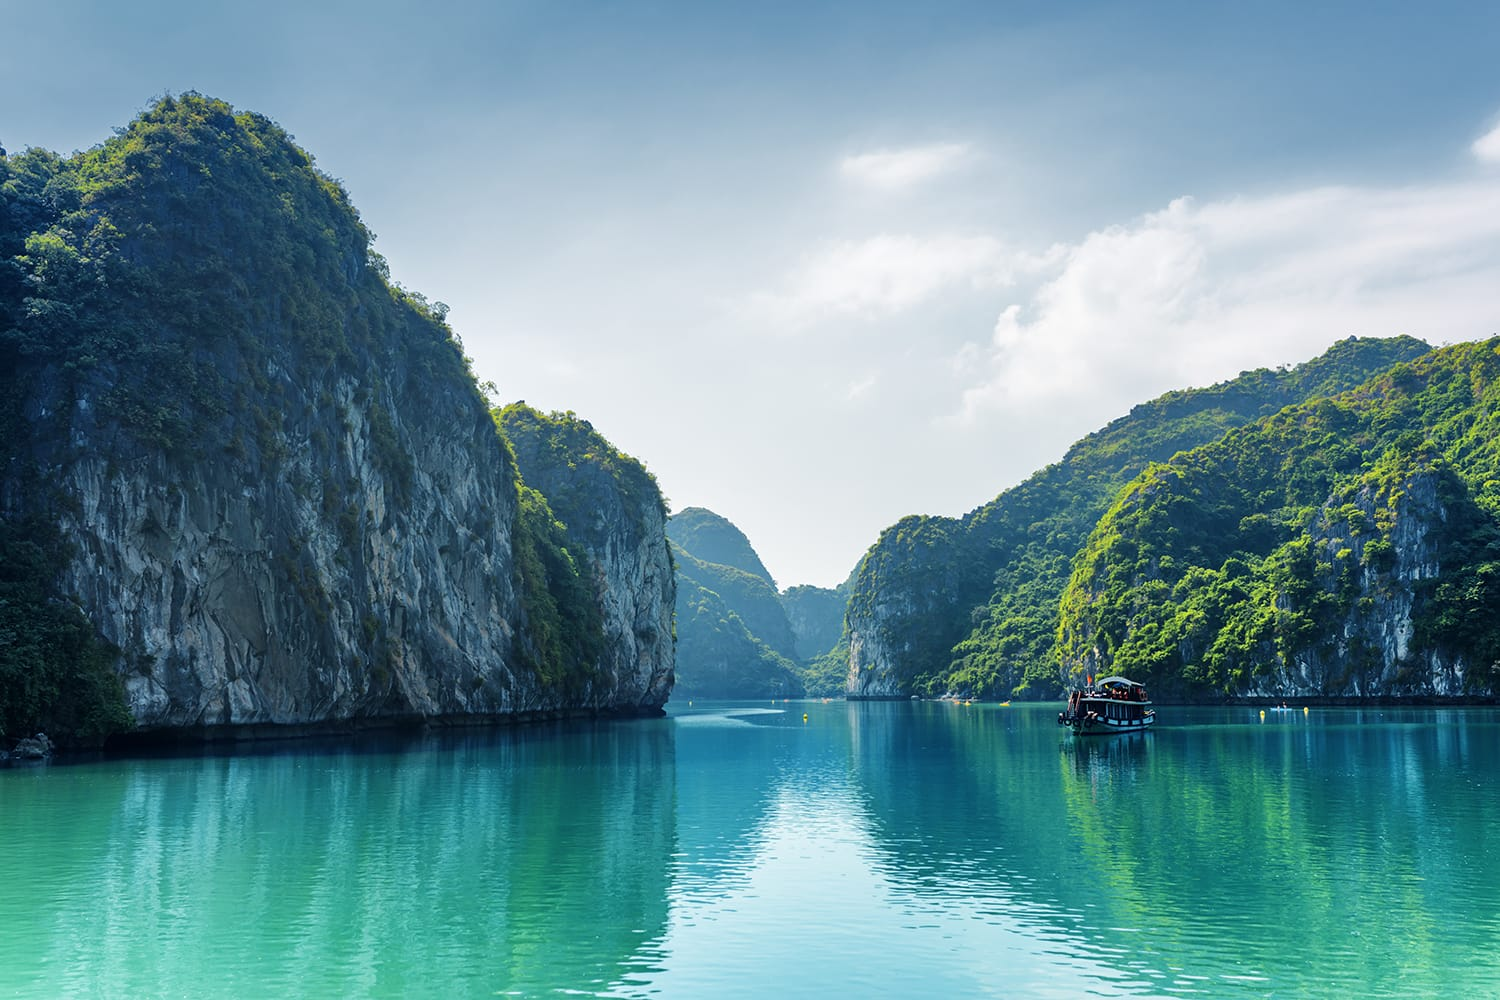 Beautiful view of lagoon in the Halong Bay (Descending Dragon Bay) at the Gulf of Tonkin of the South China Sea, Vietnam